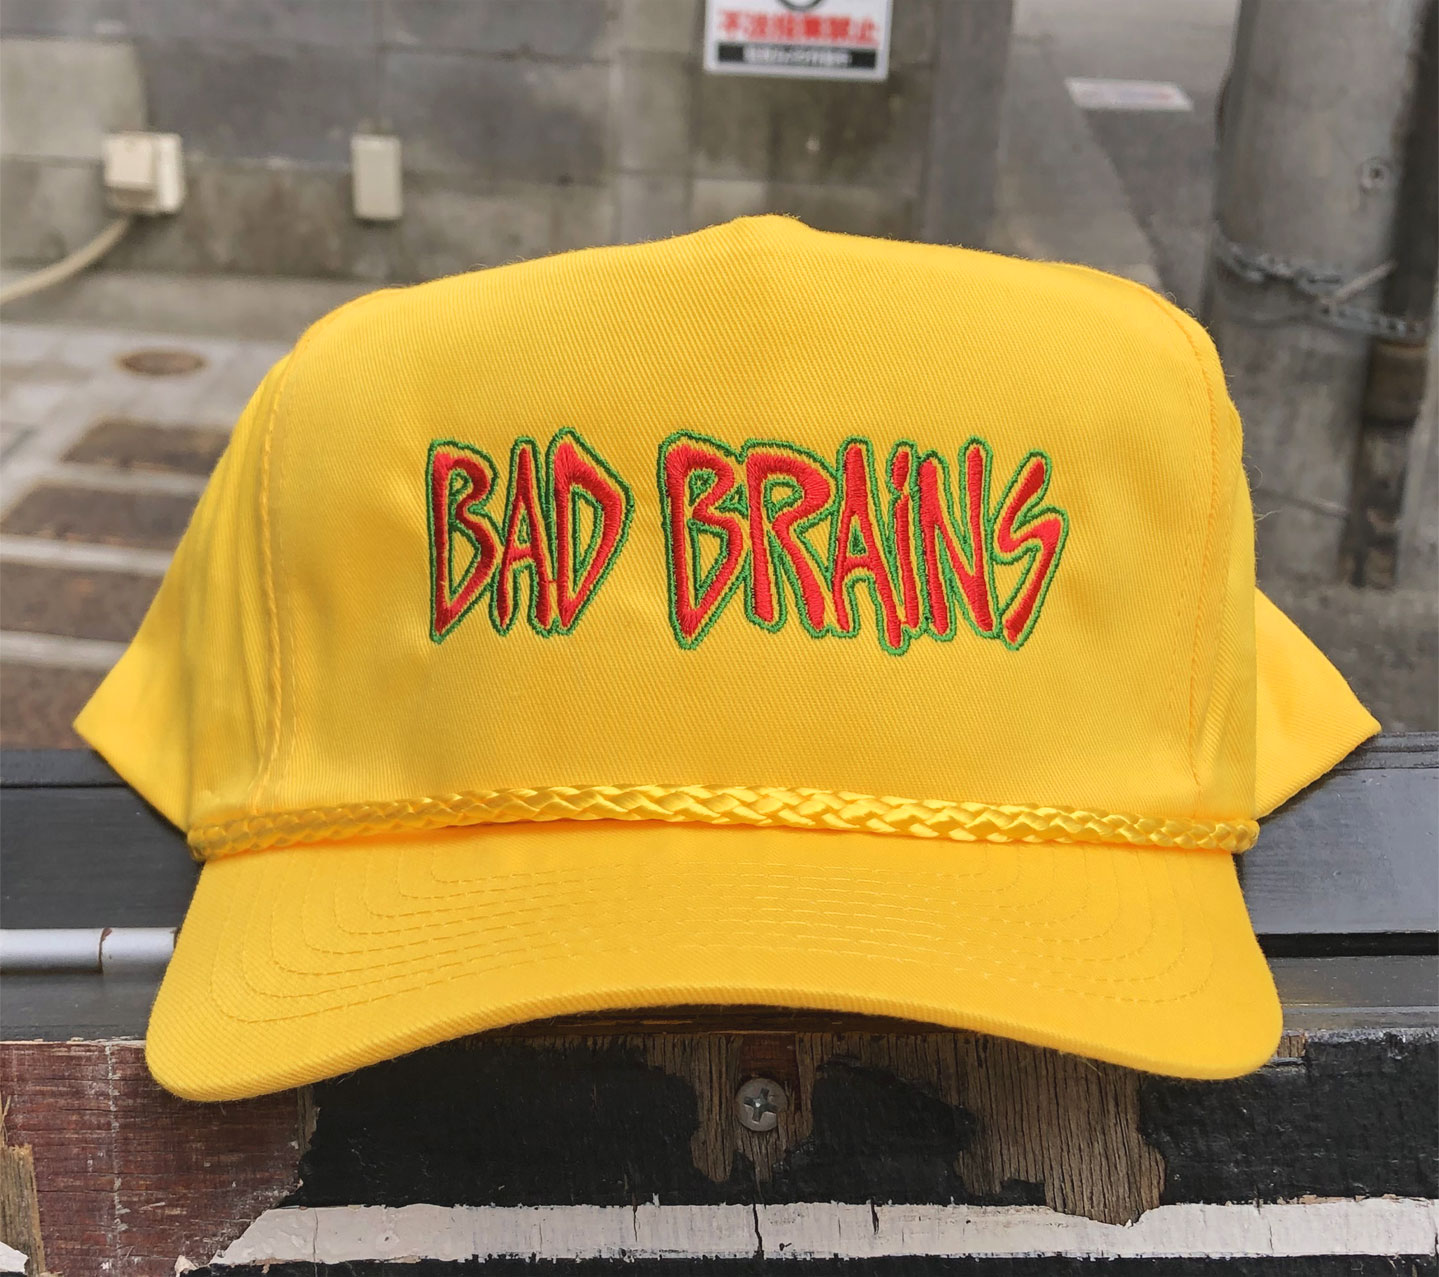 BAD BRAINS CAP LOGO2